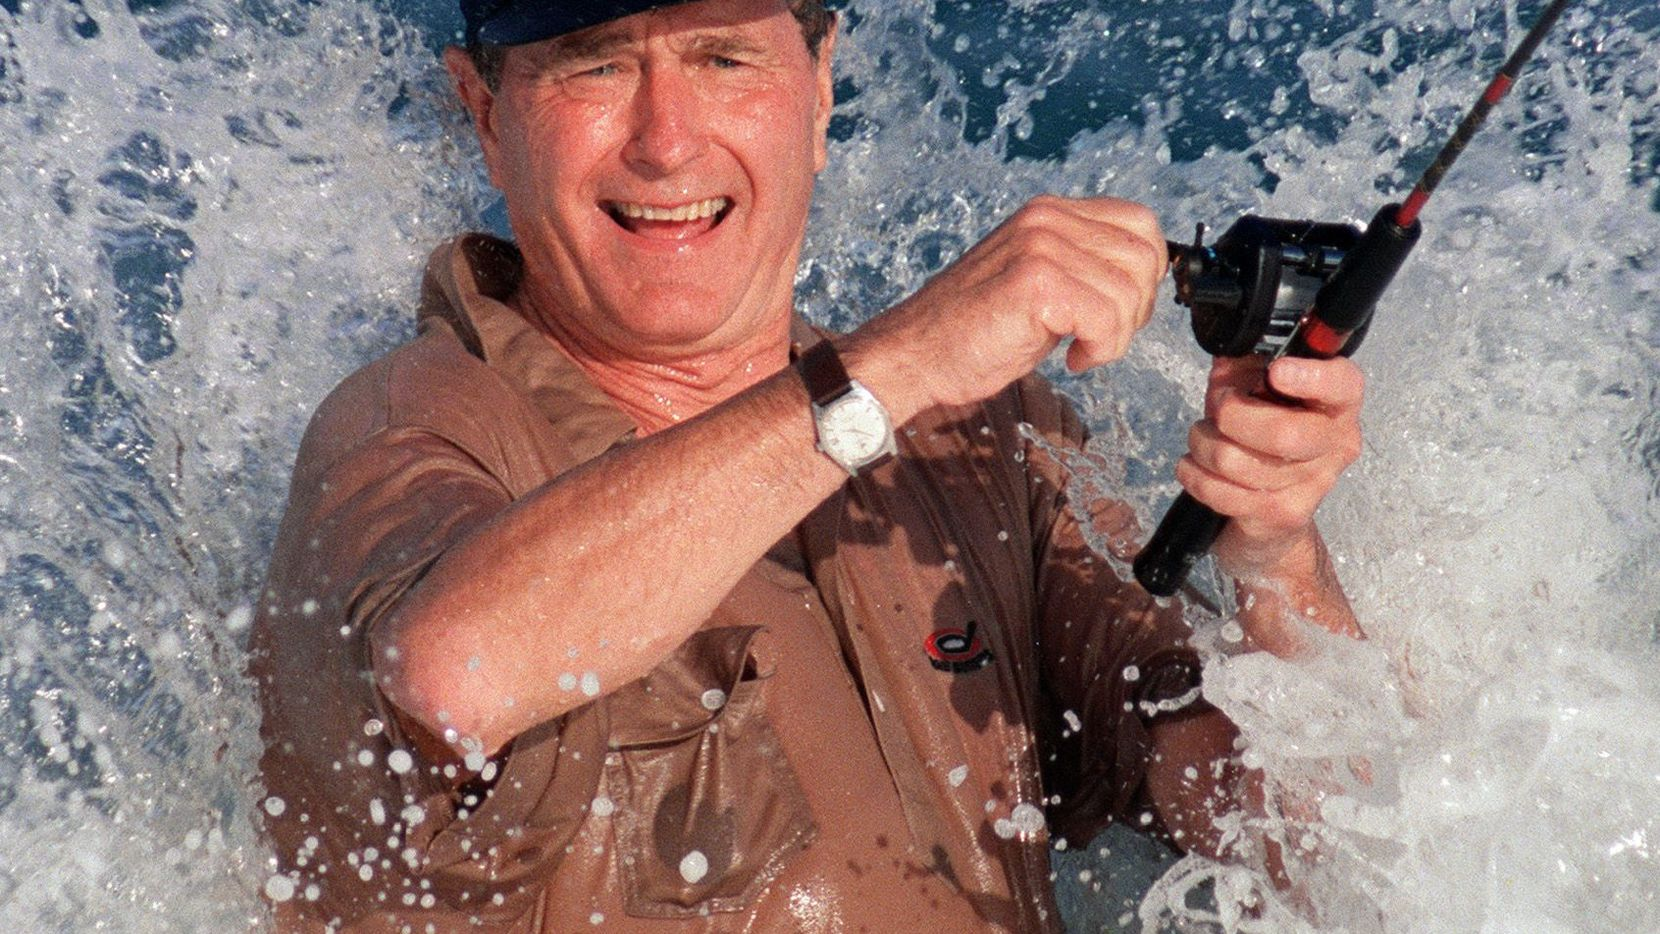 (FILES) In this file photo taken on November 14, 1988 President elect George Bush is smashed by a wave 14 November 1988 while fishing in back of the home of William Farish in Florida. (Photo by Roberto SULLIVAN / AFP)